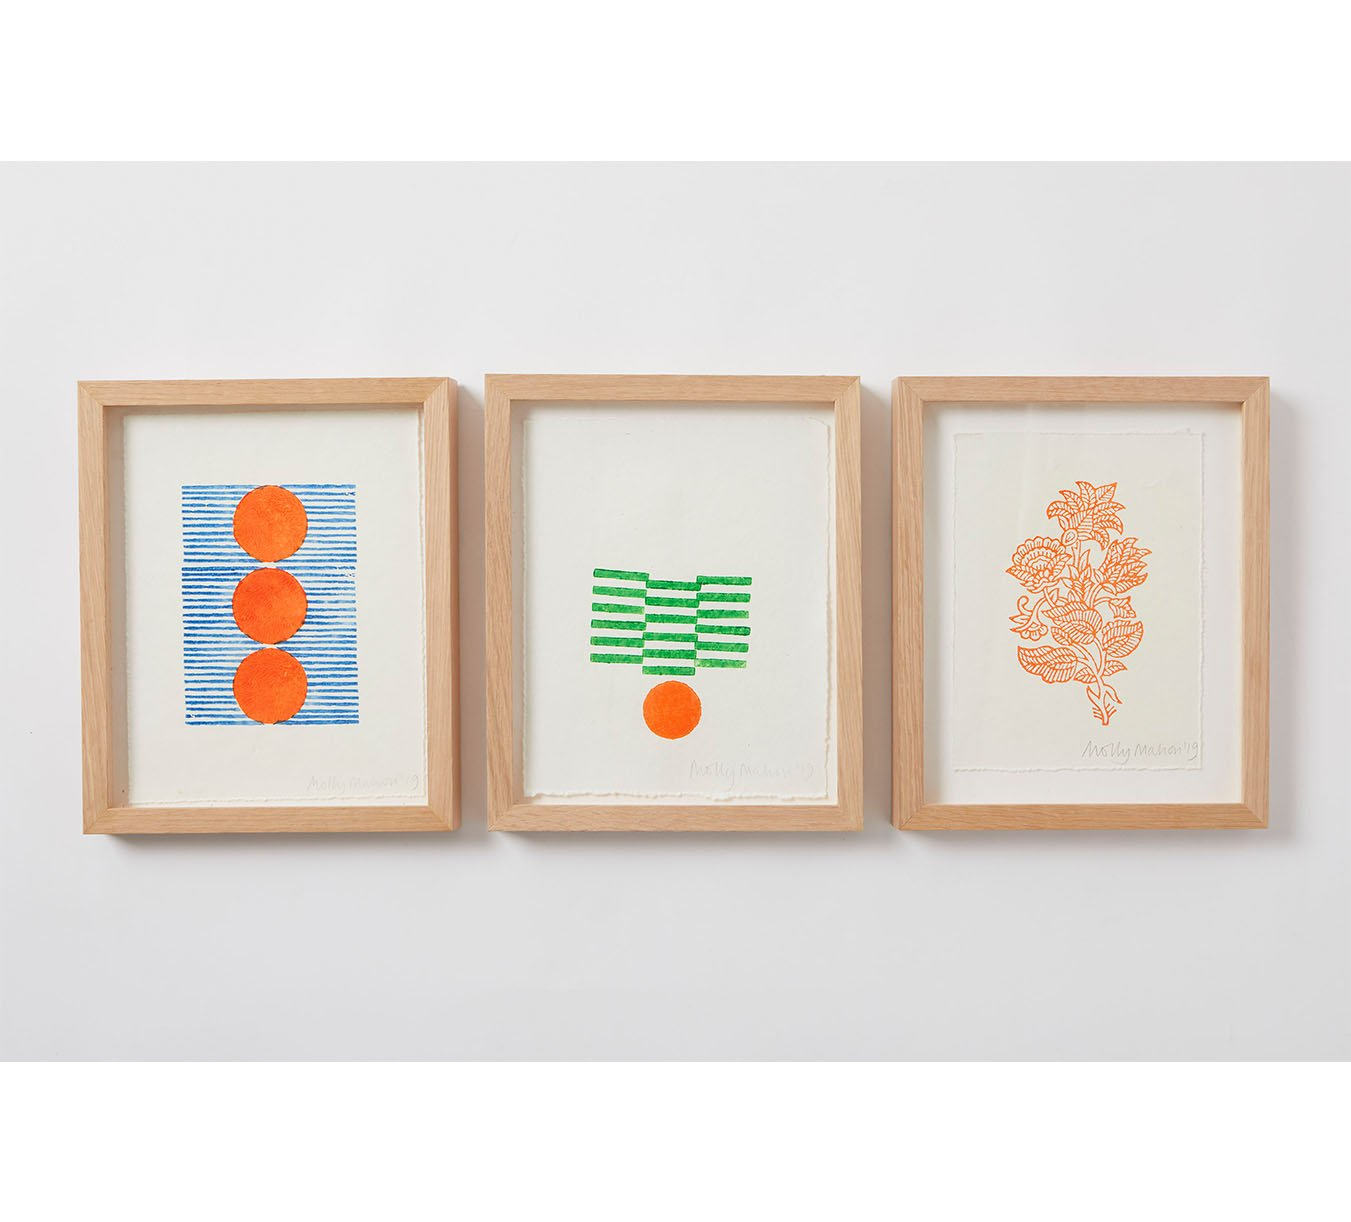 Framed - Cotton Paper Print - Trio 9